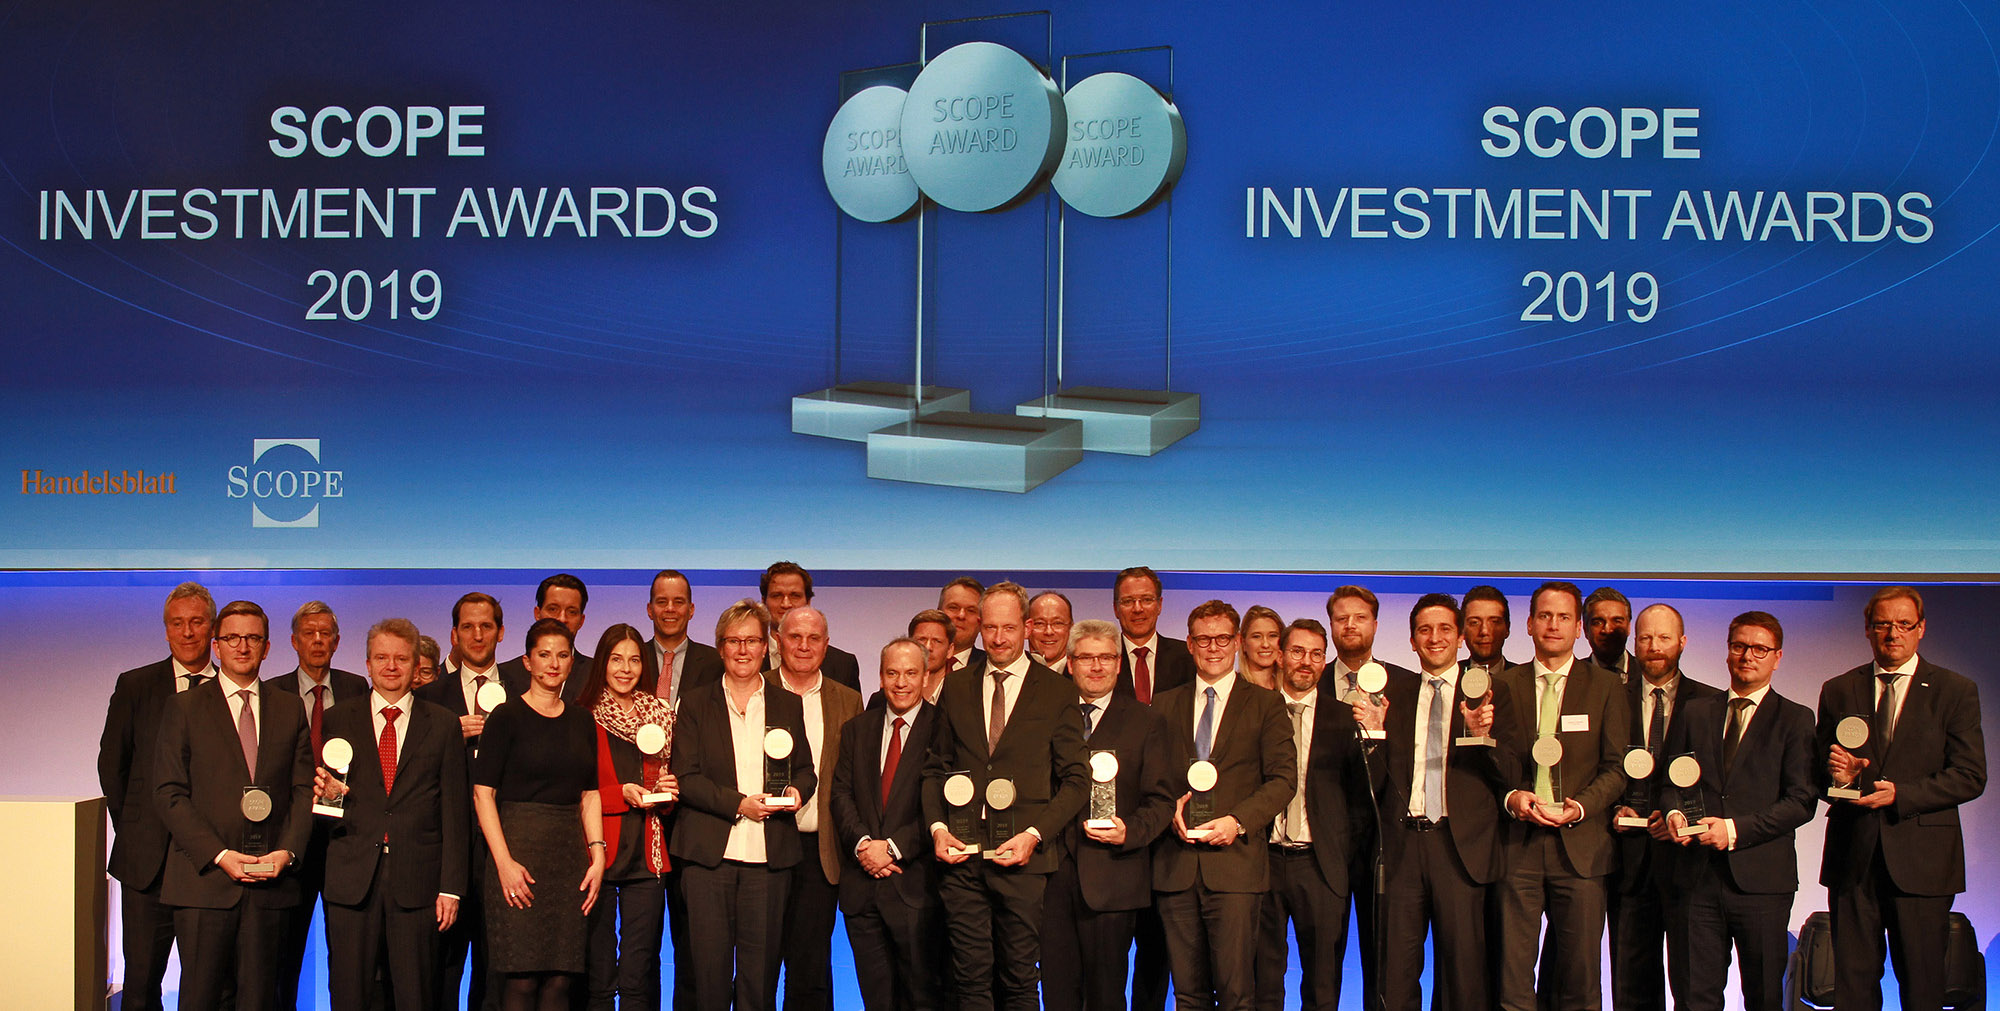 Winners 2019 Scope Investment Awards